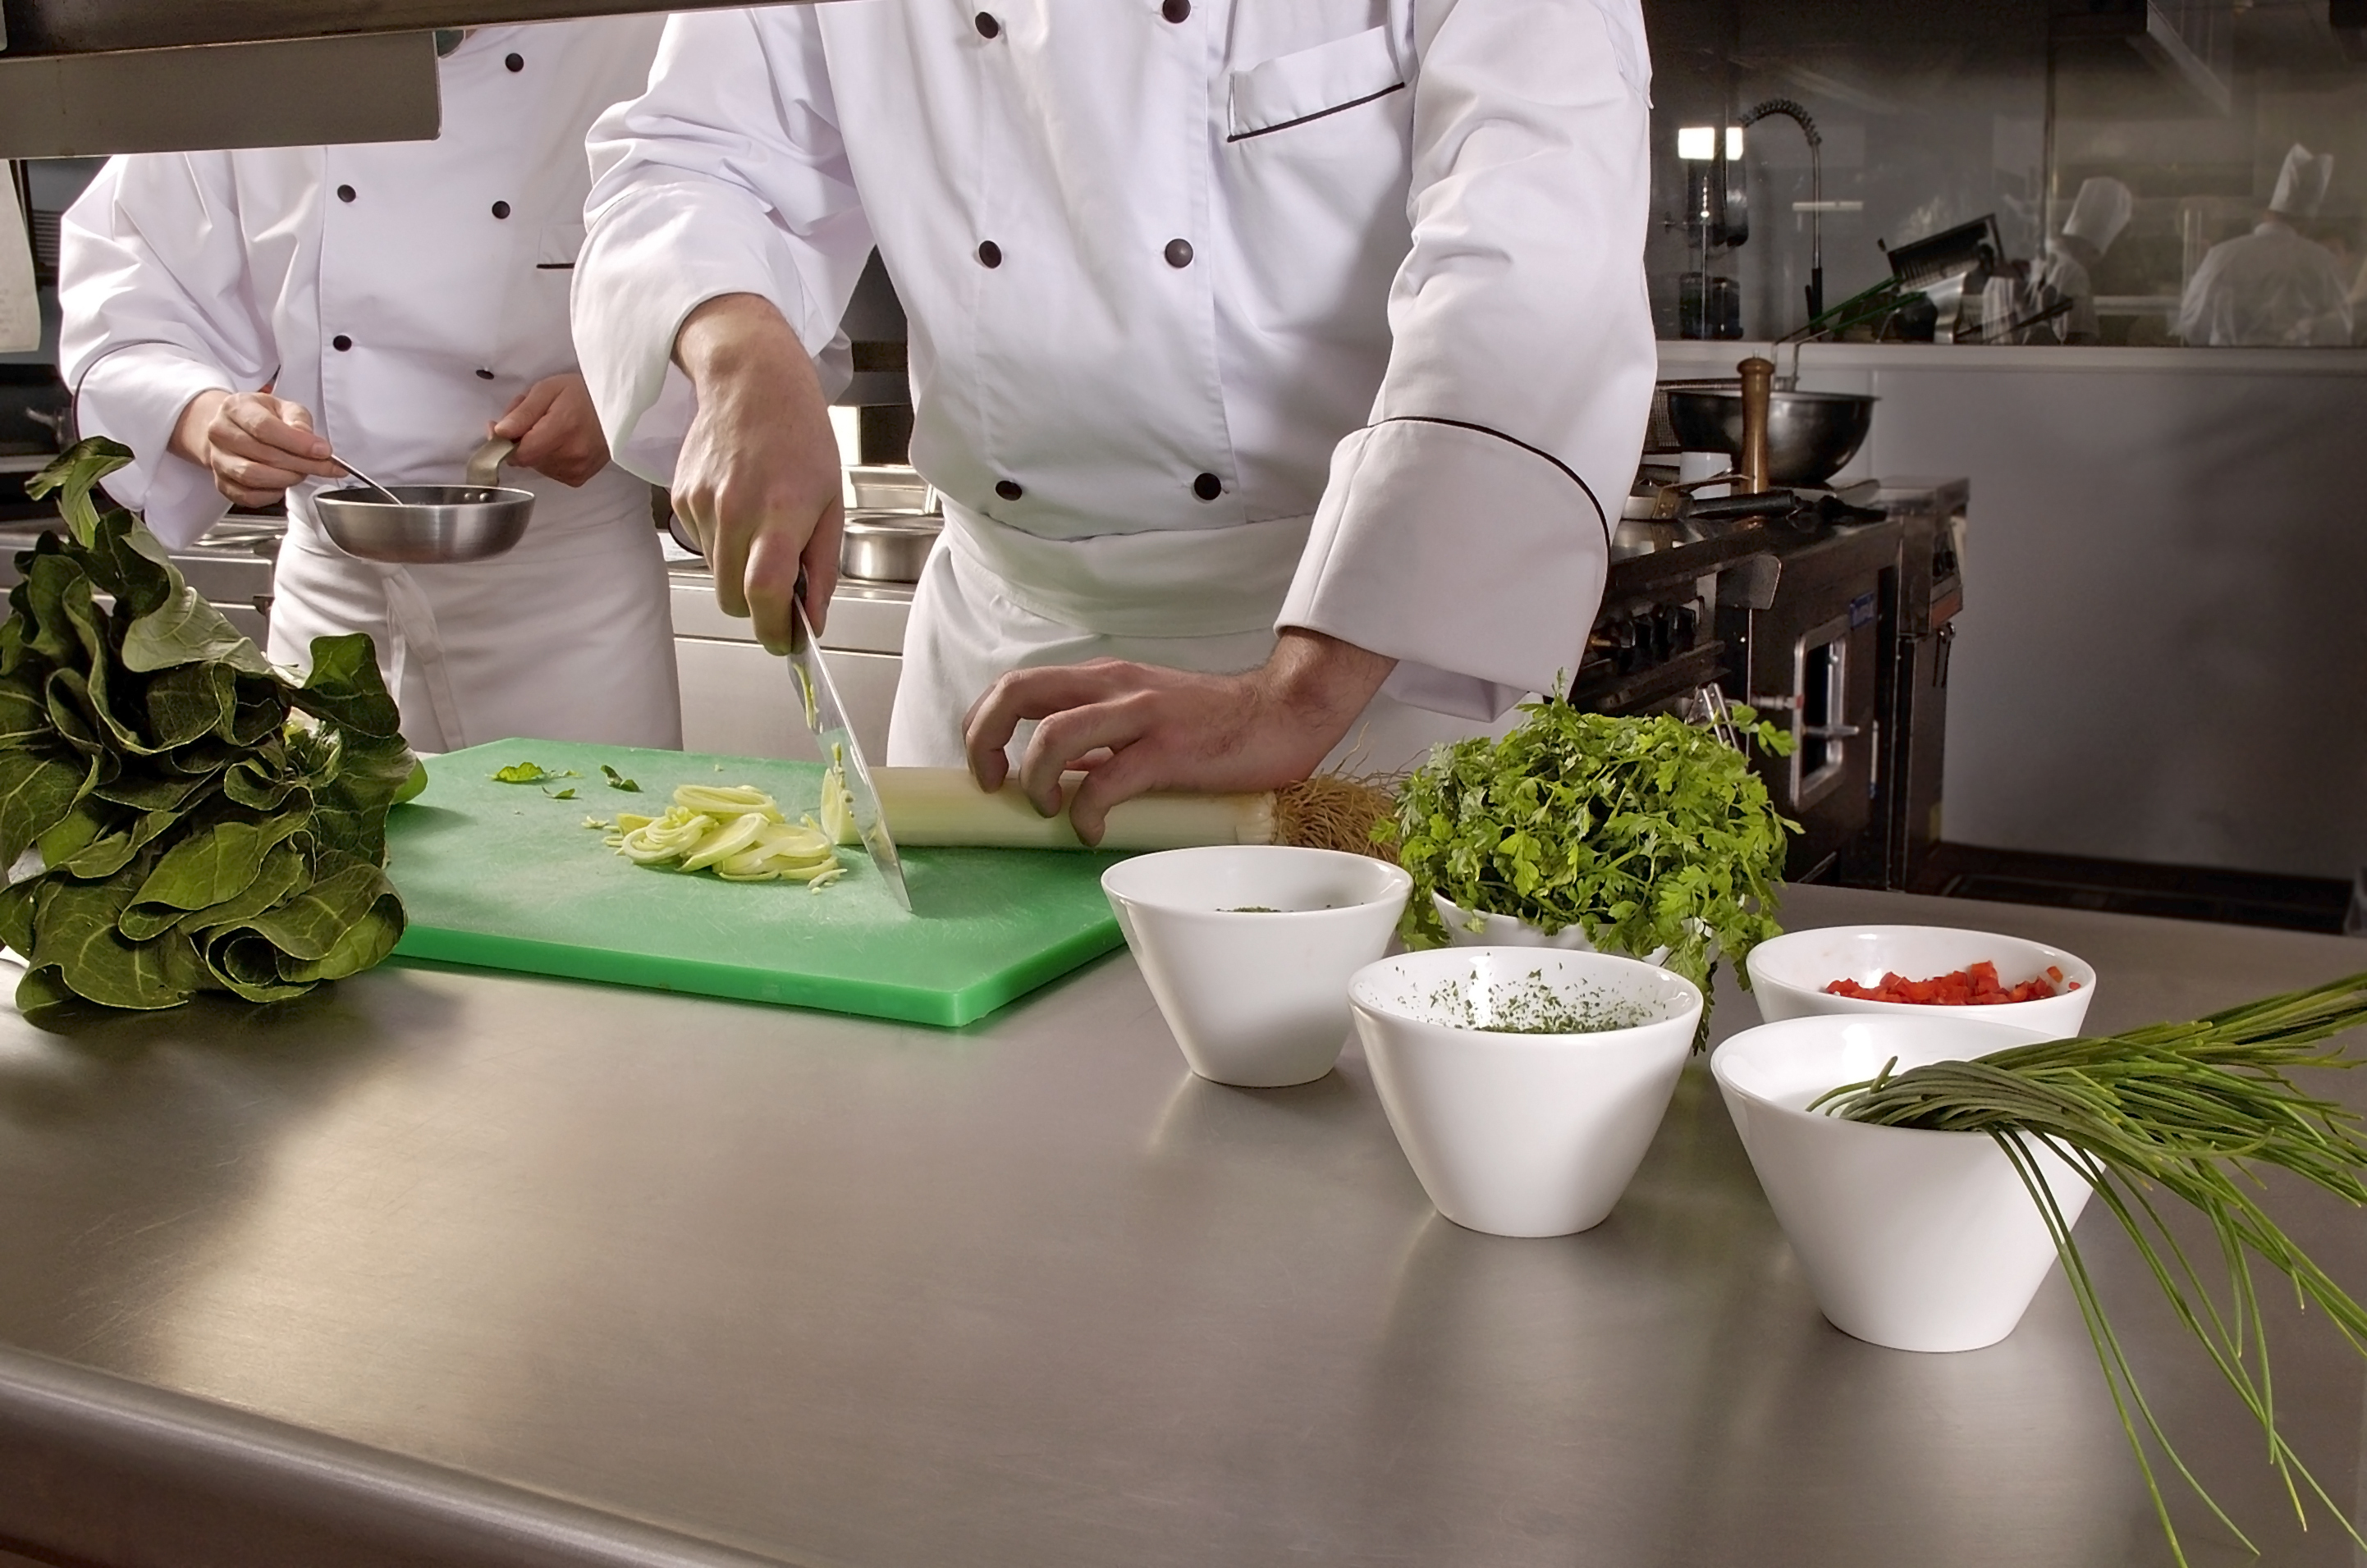 kitchen food prep shutterstock1 1 ems and associates health and safety consultants - Food Kitchen